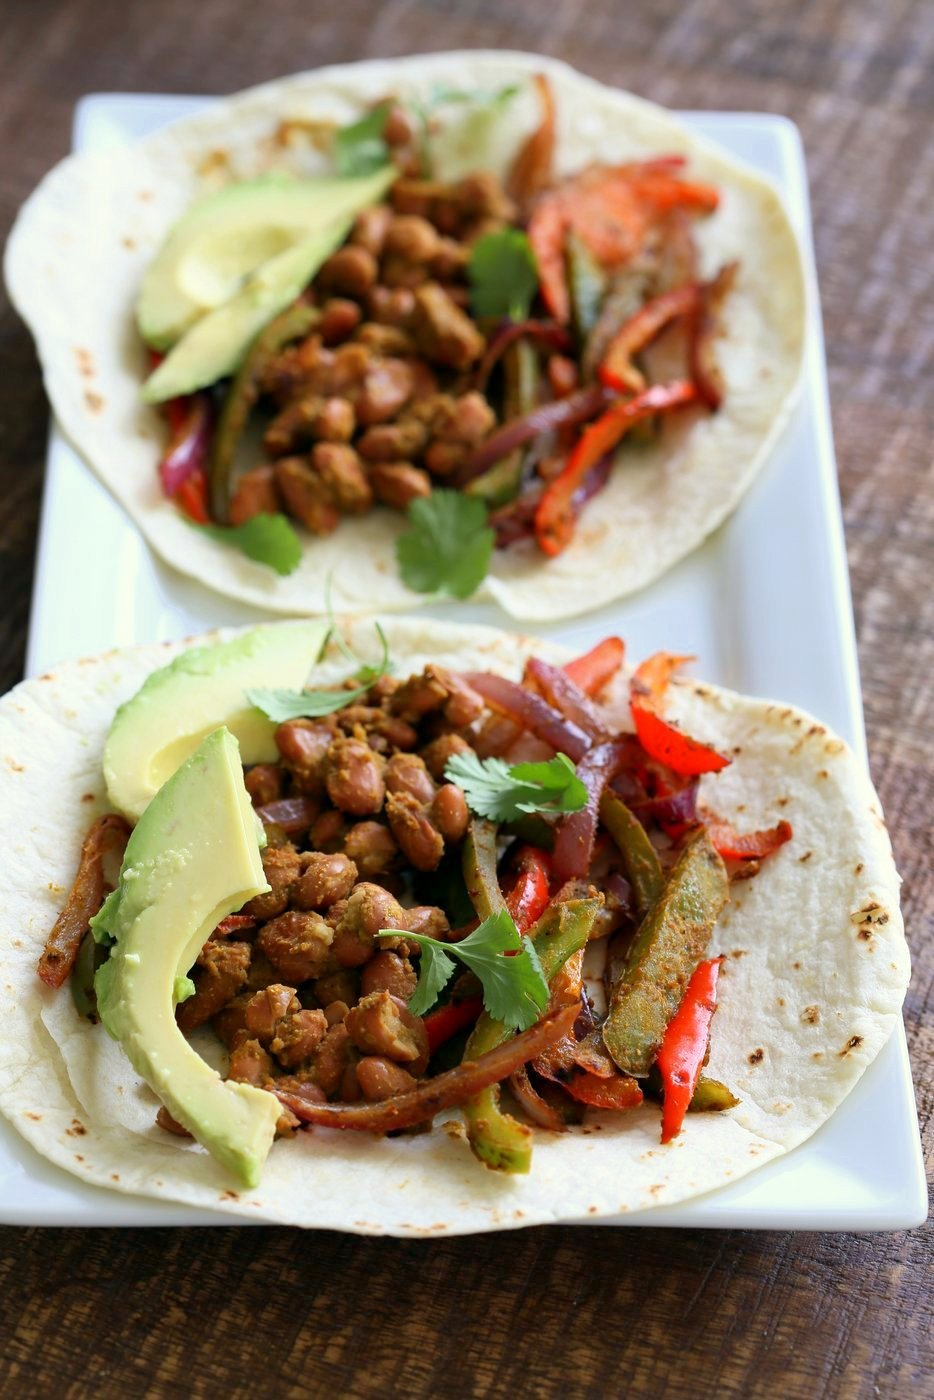 Easy Vegan Fajitas. Veggie Pinto Bean Fajita Tacos with Cilantro Chile Marinade. Amazing Fajita Marinade for veggies and Beans. Vegan Gluten-free Soy-free Vegetarian Fajita Recipe | VeganRicha.com